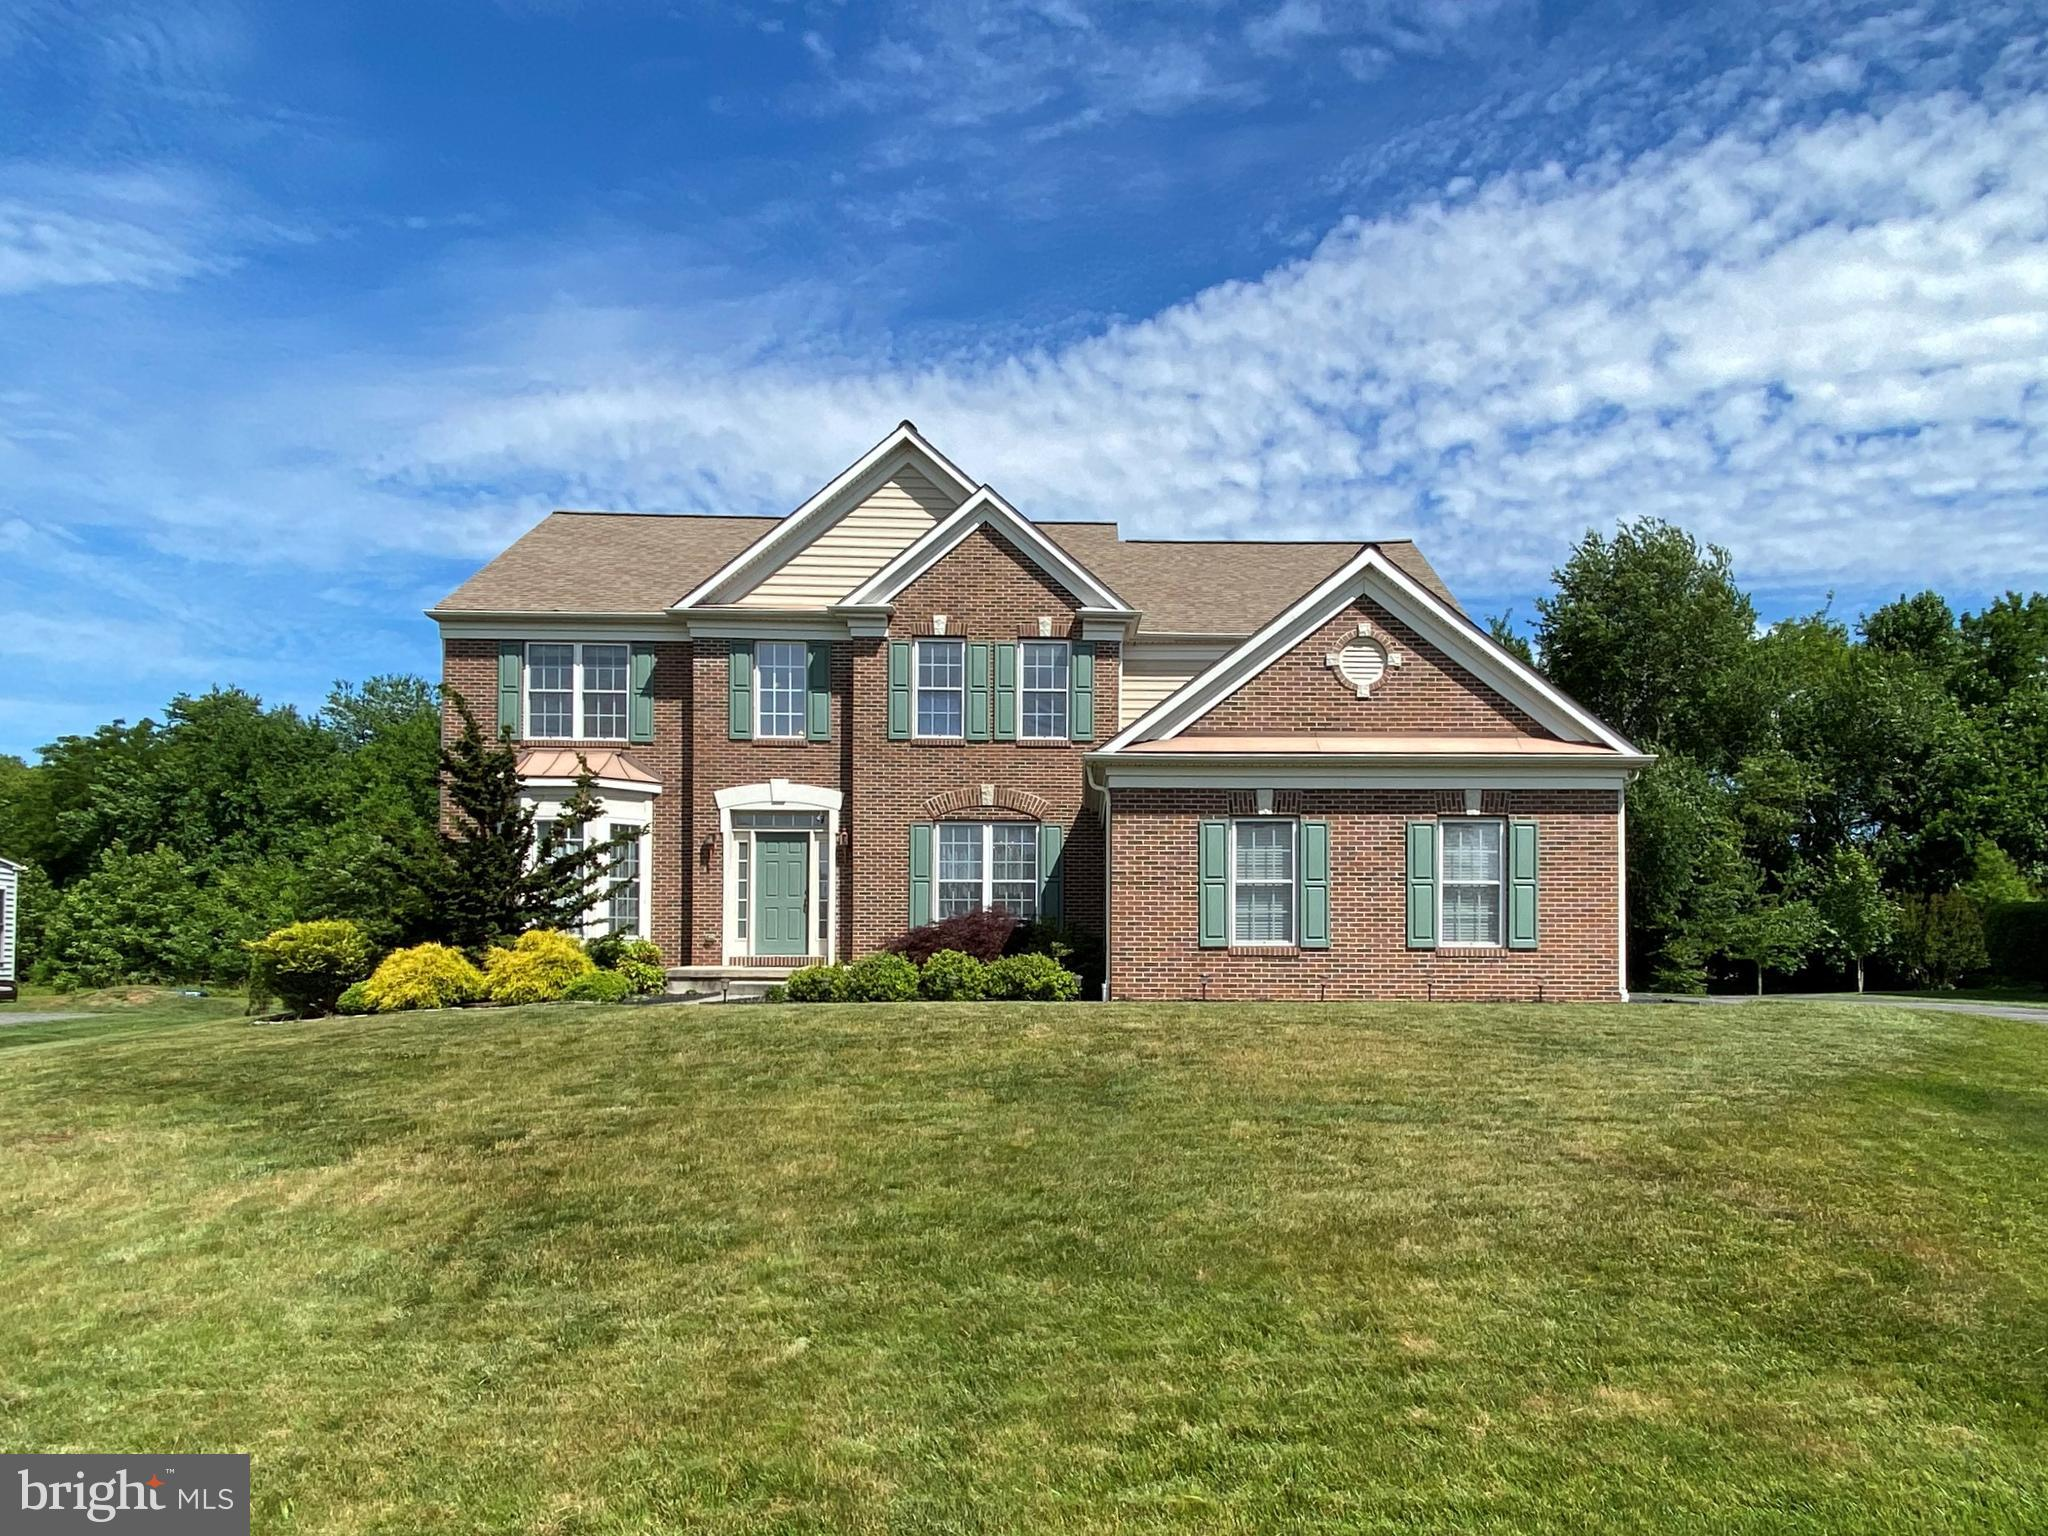 "4BR/2.5BA brick Colonial w/ 3-car garage. 2-story Foyer. Oak hardwoods and 9 ft. ceilings throughout the main level. Upgraded Gourmet Kitchen w/ 42 in. Cherry Cabinets, Corian counter tops, Center Island w/ Gas Cooktop & Breakfast Bar, B/I Microwave, Dual Wall Ovens, Desk, Pantry, and plenty of recessed lights. Sun/Day Room  with stairs to the custom paver stone Patio. Formal Dining Room with decorative crown and wainscot molding and Butler Pantry. Formal Living Room with Bay Window. Expansive 2-story Family Room with wood burning Fireplace complete with marble surround and decorative mantel which is highlighted by raised panel trim all the wall to the ceiling. First Floor Study with French Doors. Main level laundry / Mud Room with utility tub (Washer & Dryer included). Elegant 2-Story Foyer with split staircase with oak treads and carpet runner leads to the ""catwalk"" style upstairs hallway. The Master Bedroom Suite features a tray ceiling with ceiling fan and an extra large Walk-In Closet w/ Laundry Chute.  An upgraded private Master Bath with ceramic tile, double sink vanity, oversized stall shower, and large soaking tub completes the offering.   Bedroom #2 has its own Walk-In Closet and BR#3 has semi-private access to the Hall Bath. Bedroom #4 has a double sized closet. The unfinished basement was intentionally designed with extra high walls, walk-out stairs, and roughed-in plumbing - all desirable upgrades if you finish the space at some point in the future. Dual zone High Efficiency HVAC system. This 0.62 acre lot backs to community open space for added privacy. Northern most community in the highly acclaimed Appoquinimink School District.  This Pulte-built home offers a level of style and finish you don't see in many homes and the stucco-free exterior means low maintenance and no concerns now or in the future. Put it on your list to see today!"